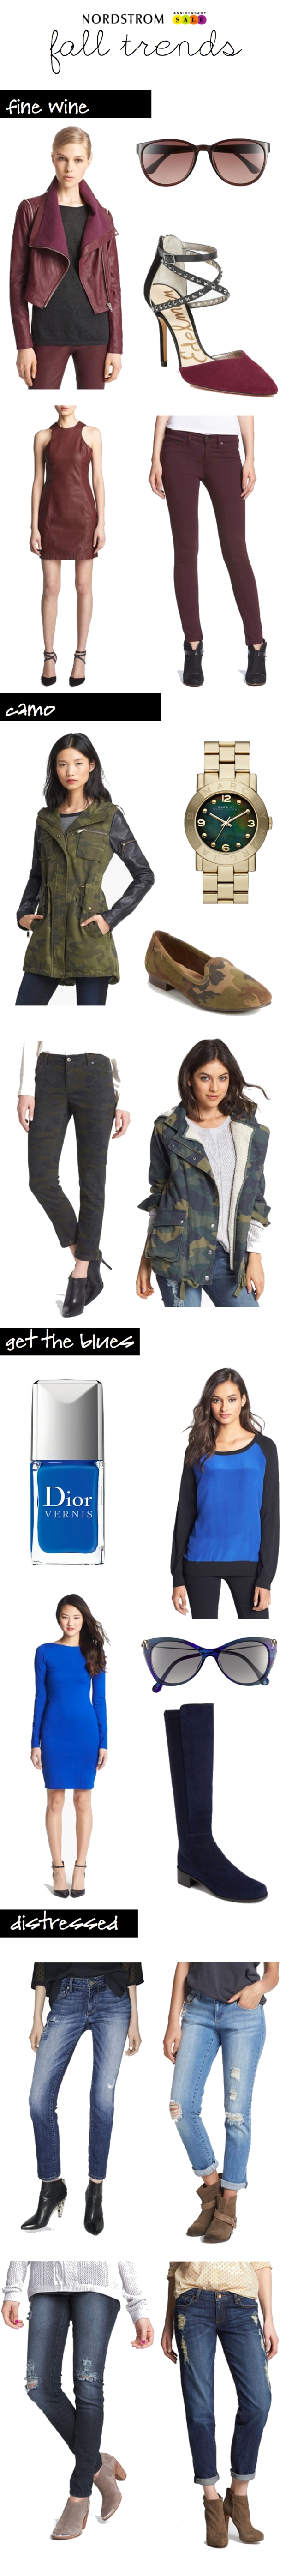 nordstrom anniversary sale - fall trends